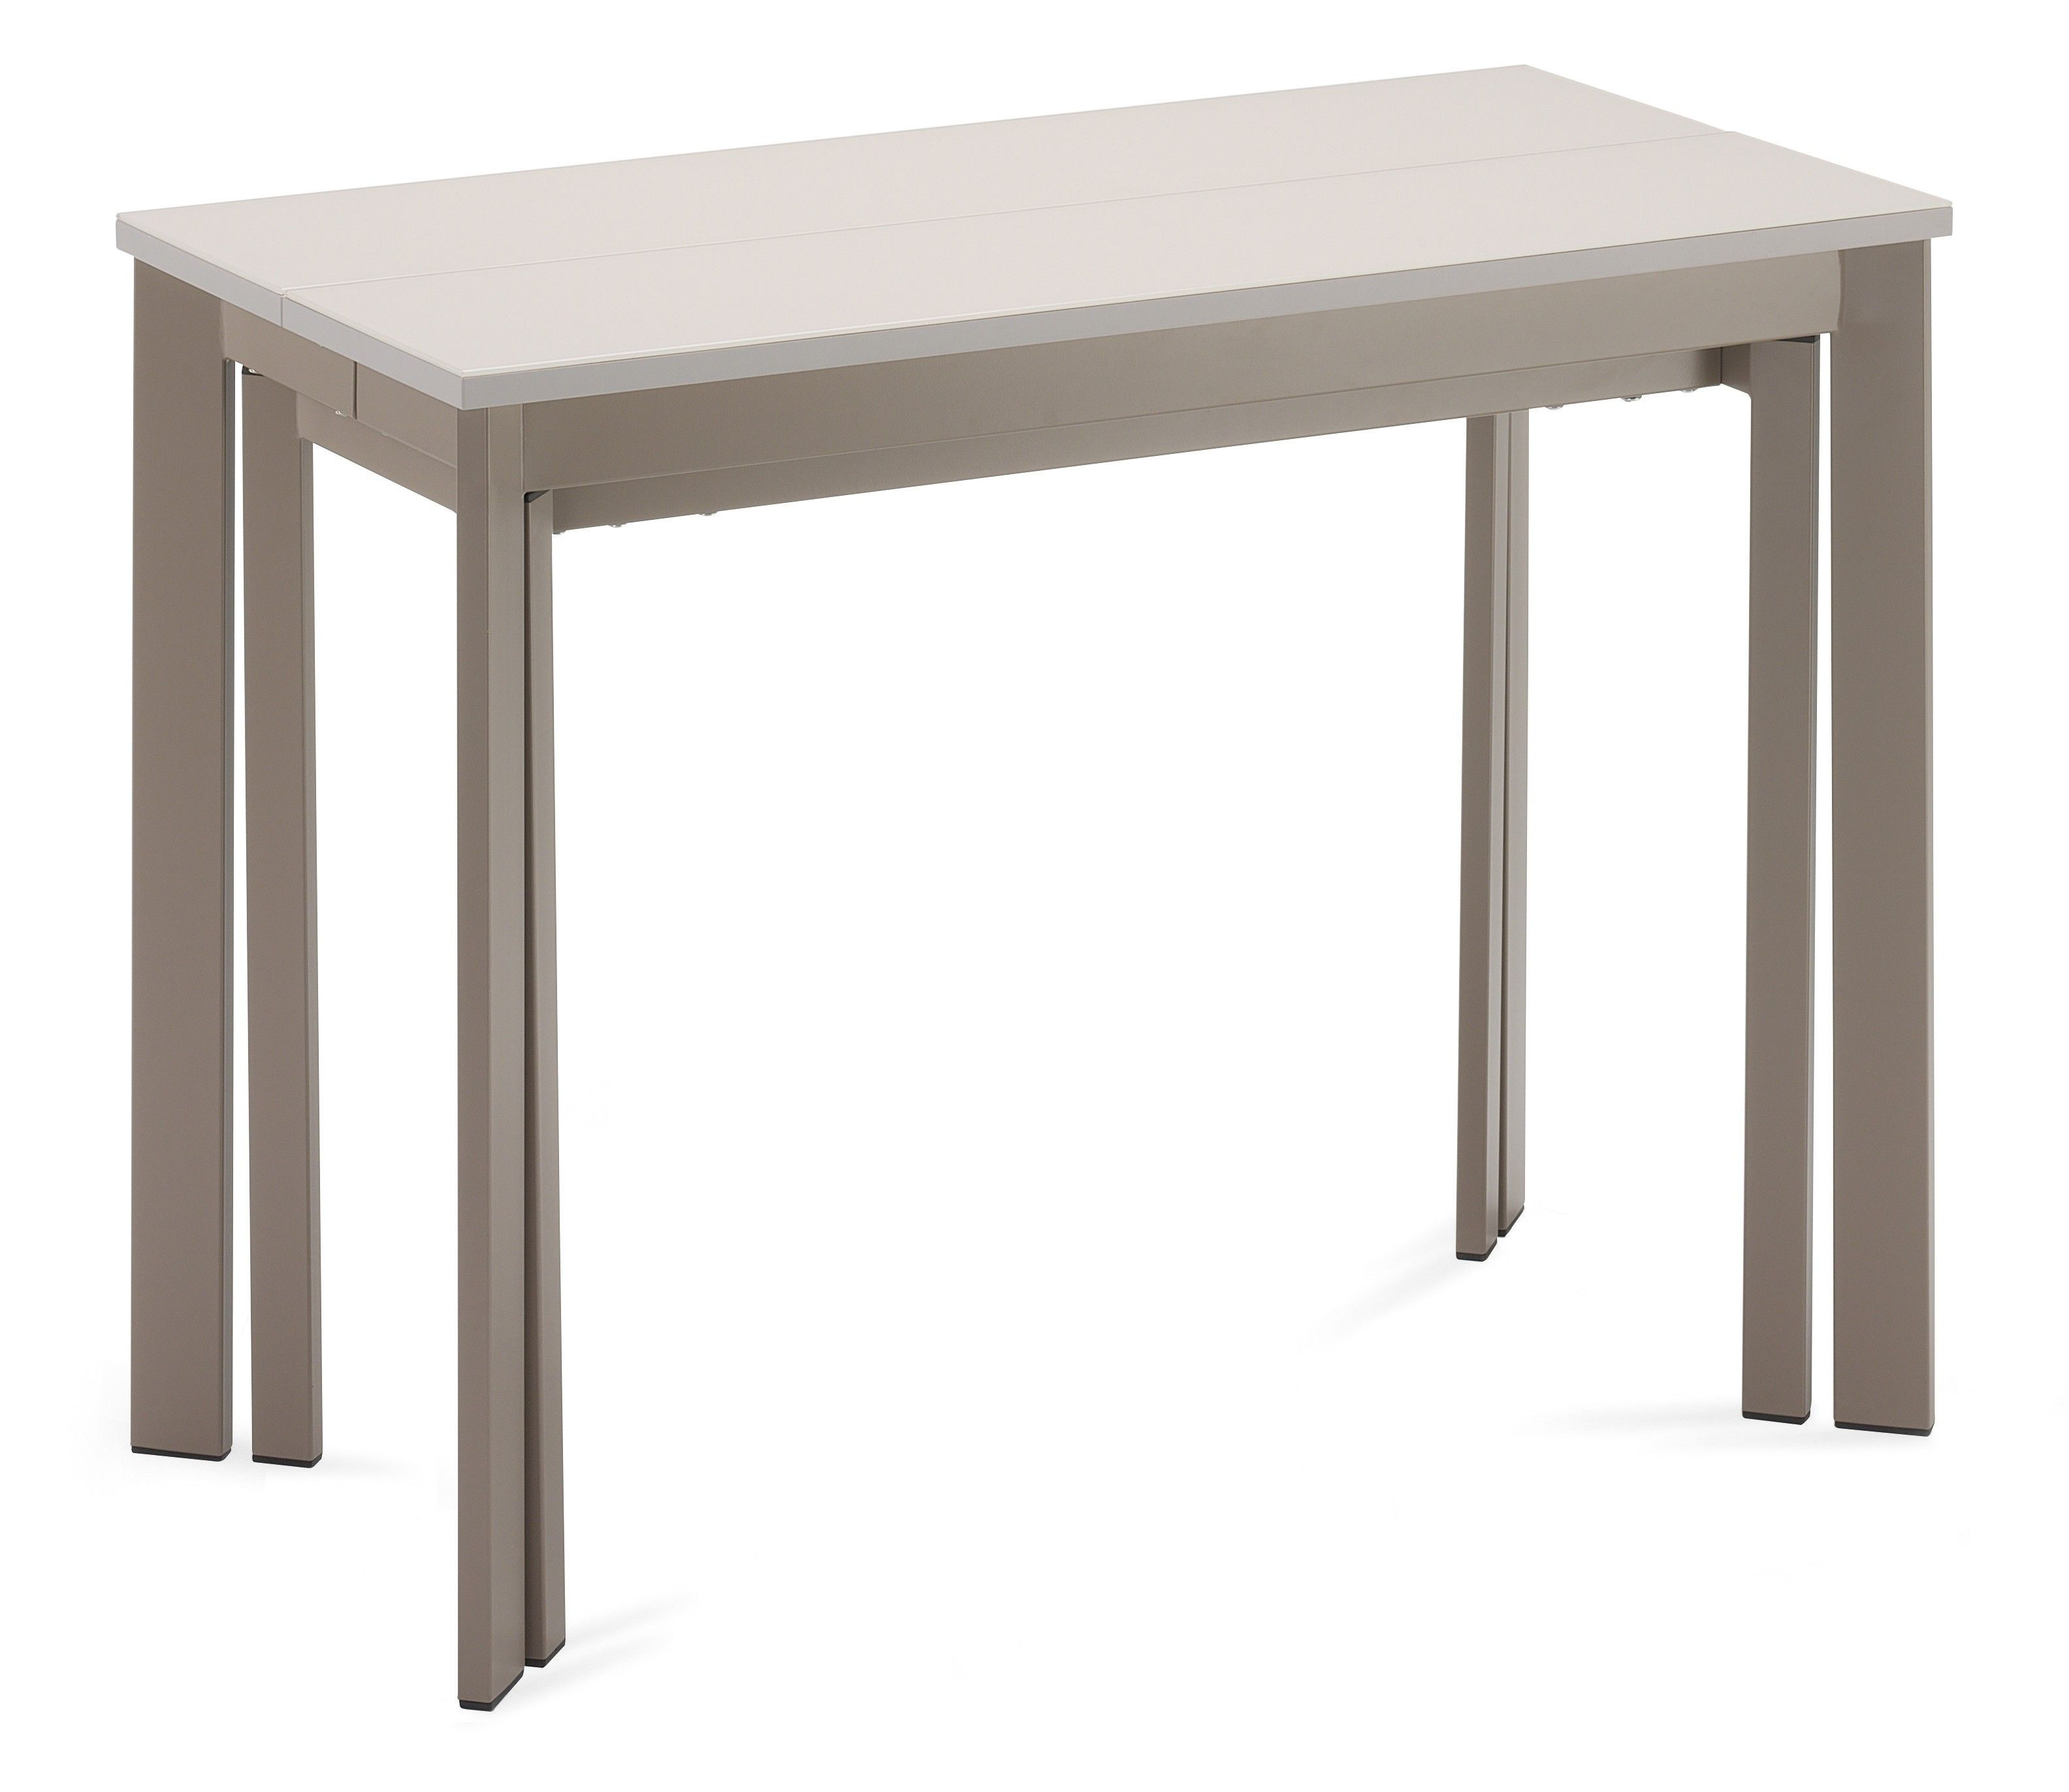 Condor consoleextending dining table aflair coffee side condor consoleextending dining table geotapseo Choice Image